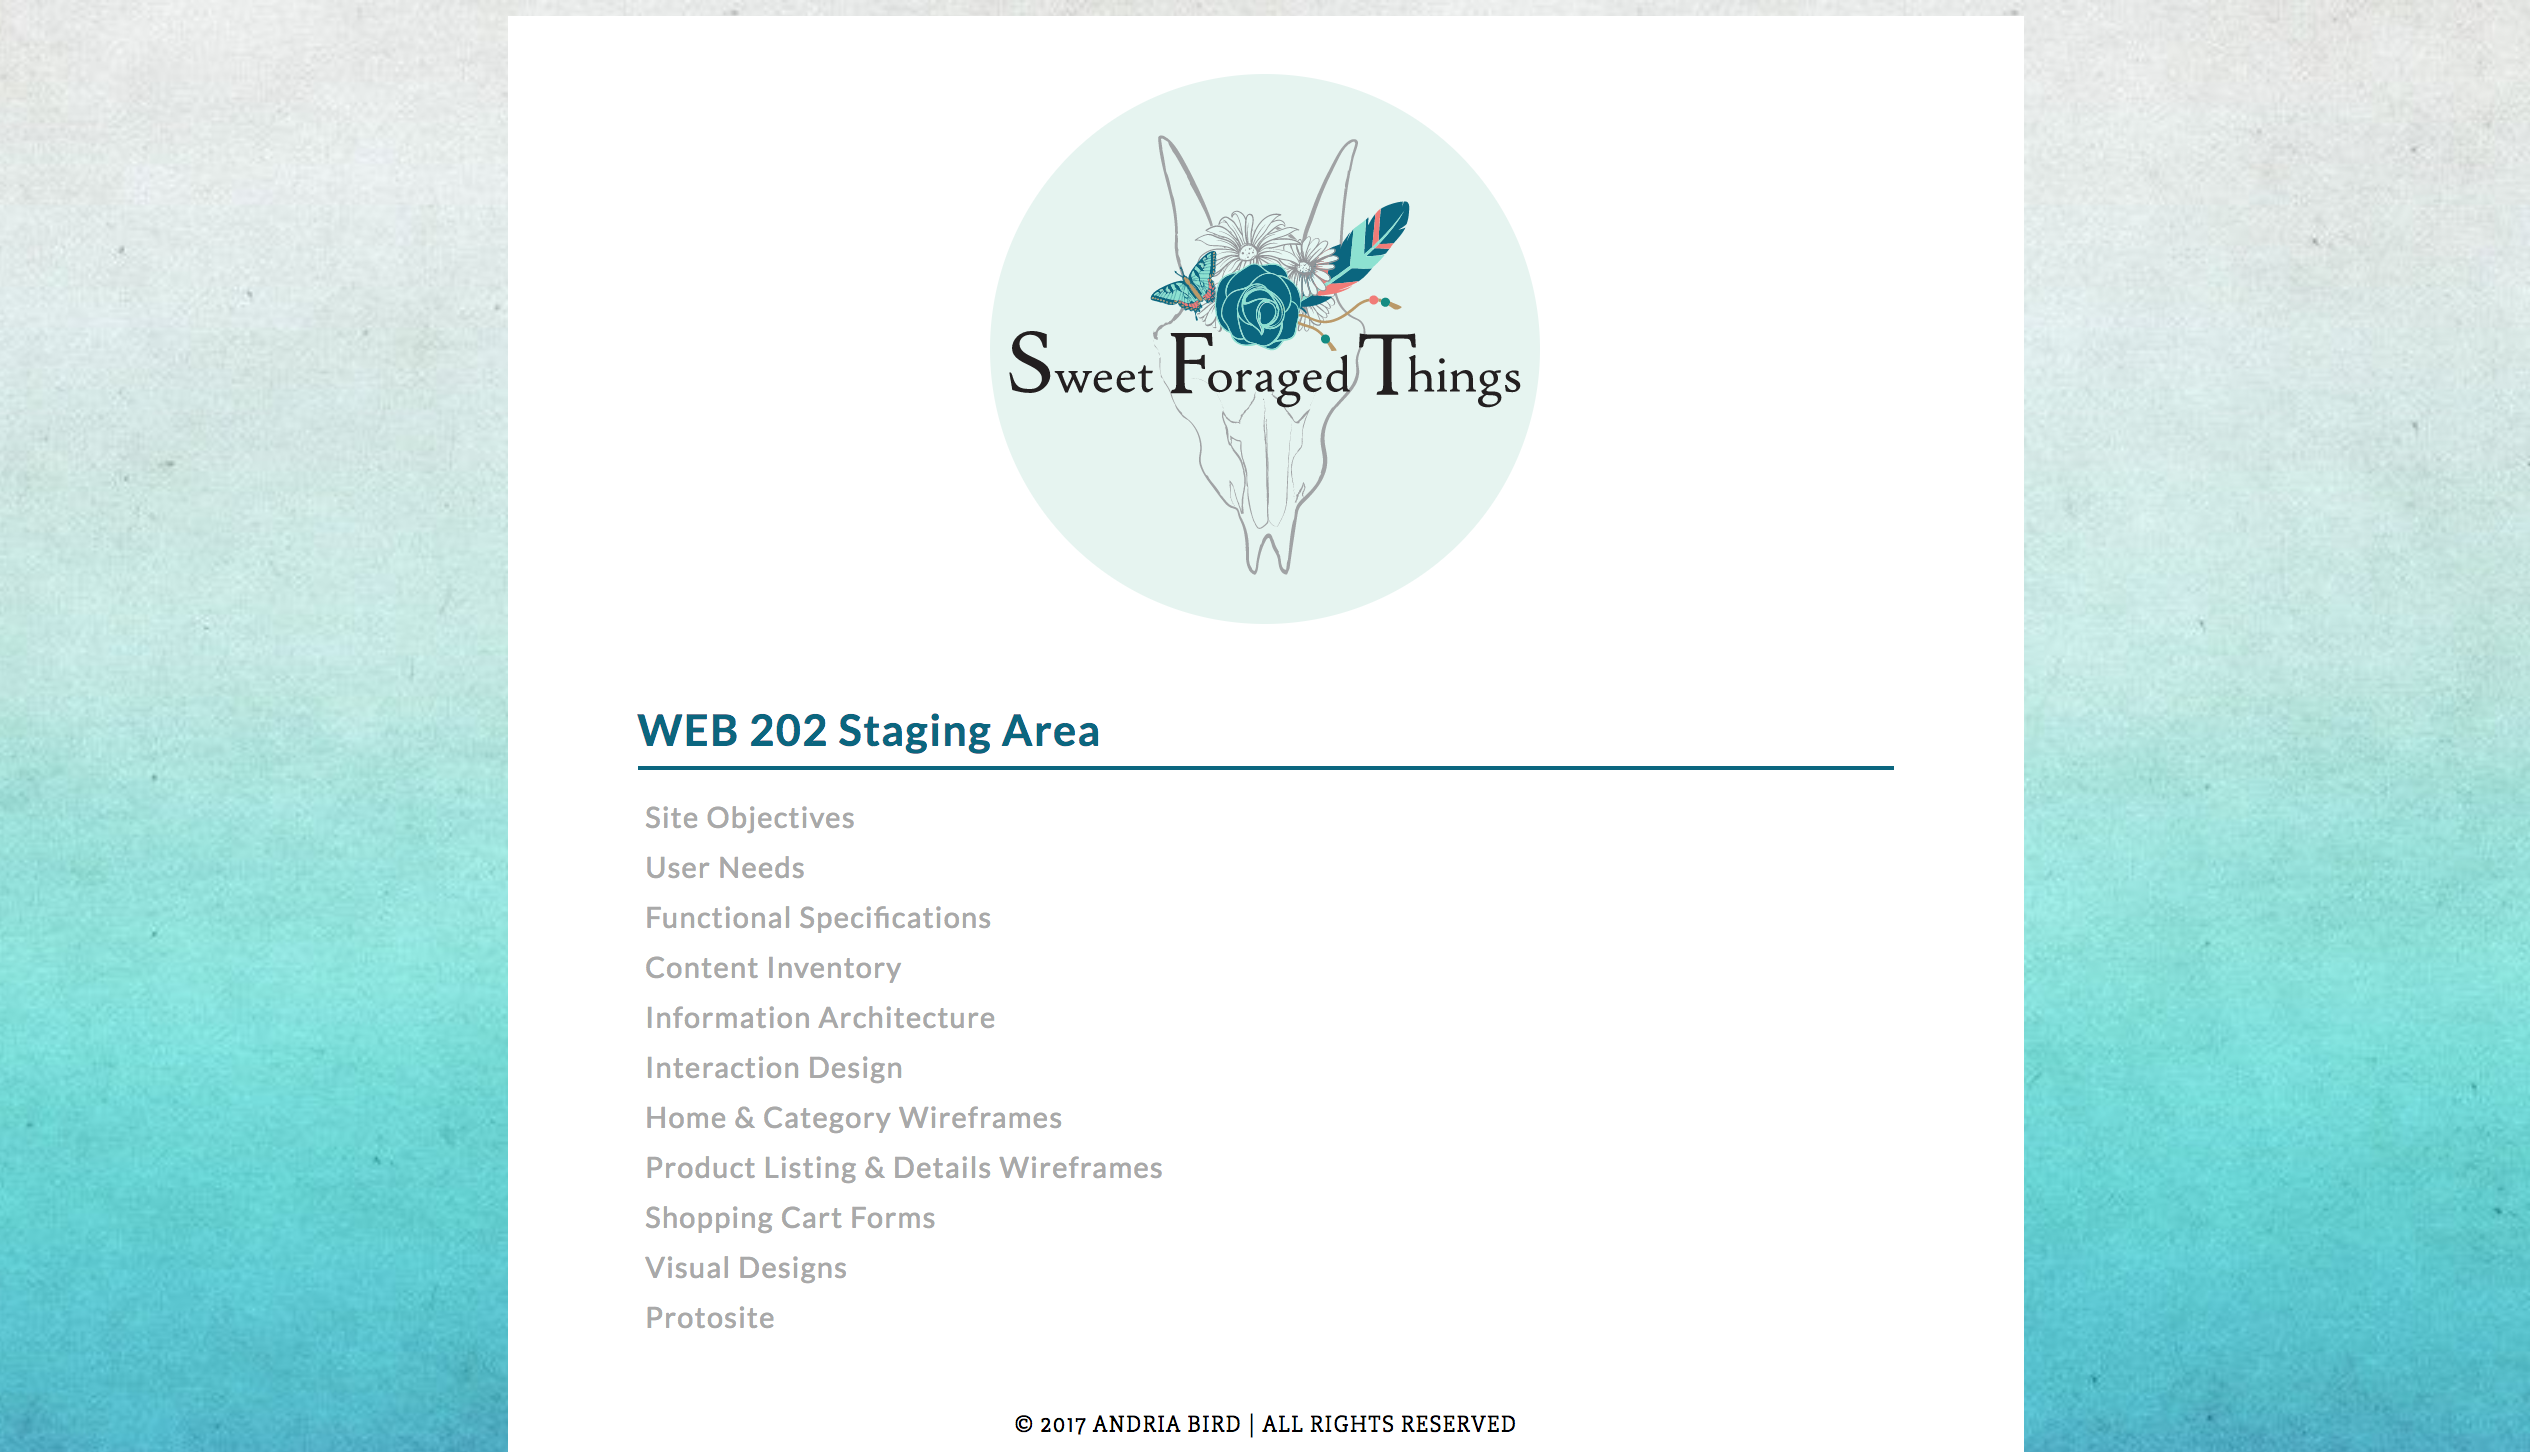 Sweet Foraged Things - Website Staging Area